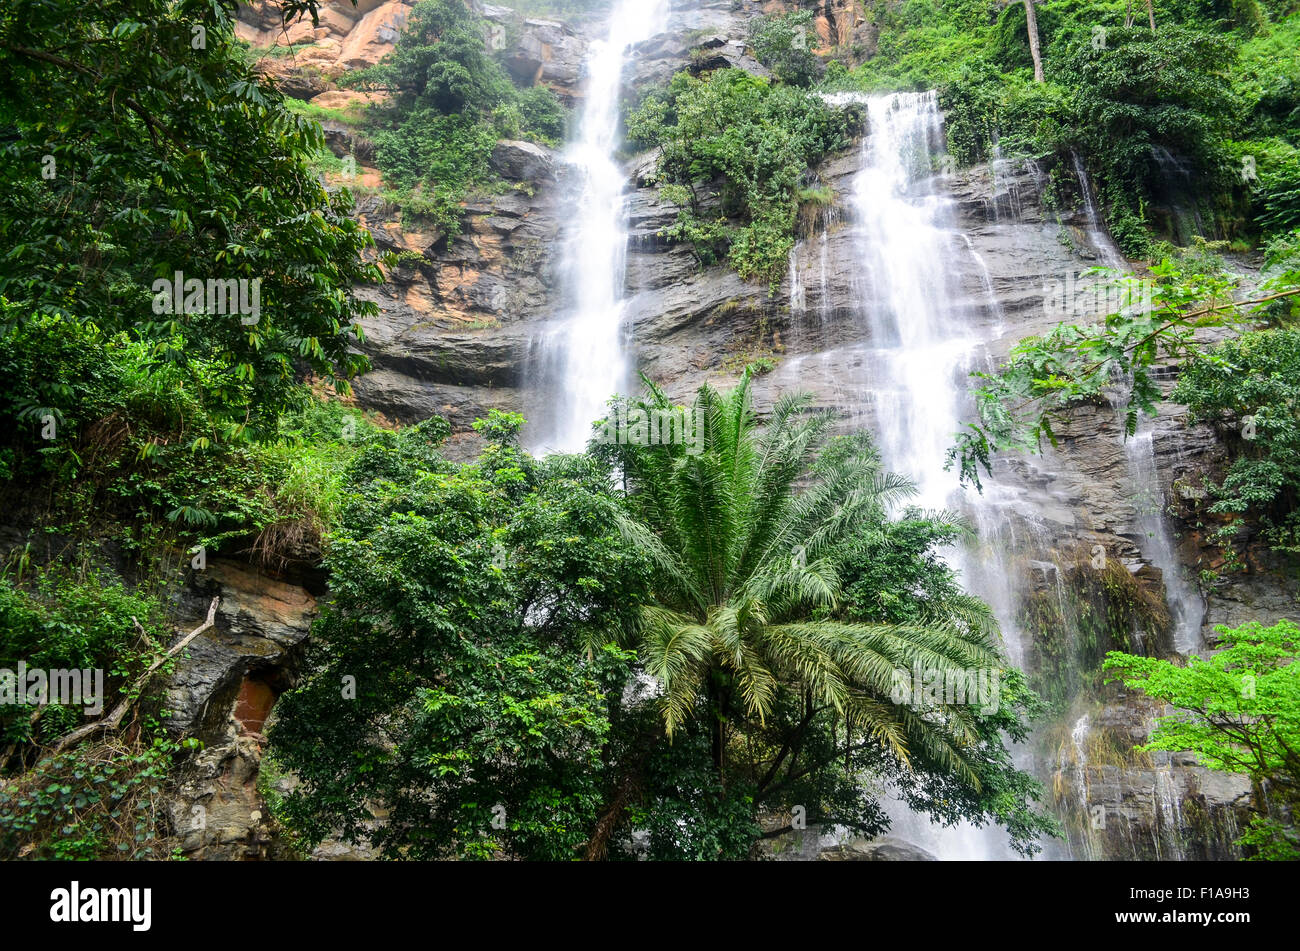 Waterfal in Kpalimé, Togo - Stock Image